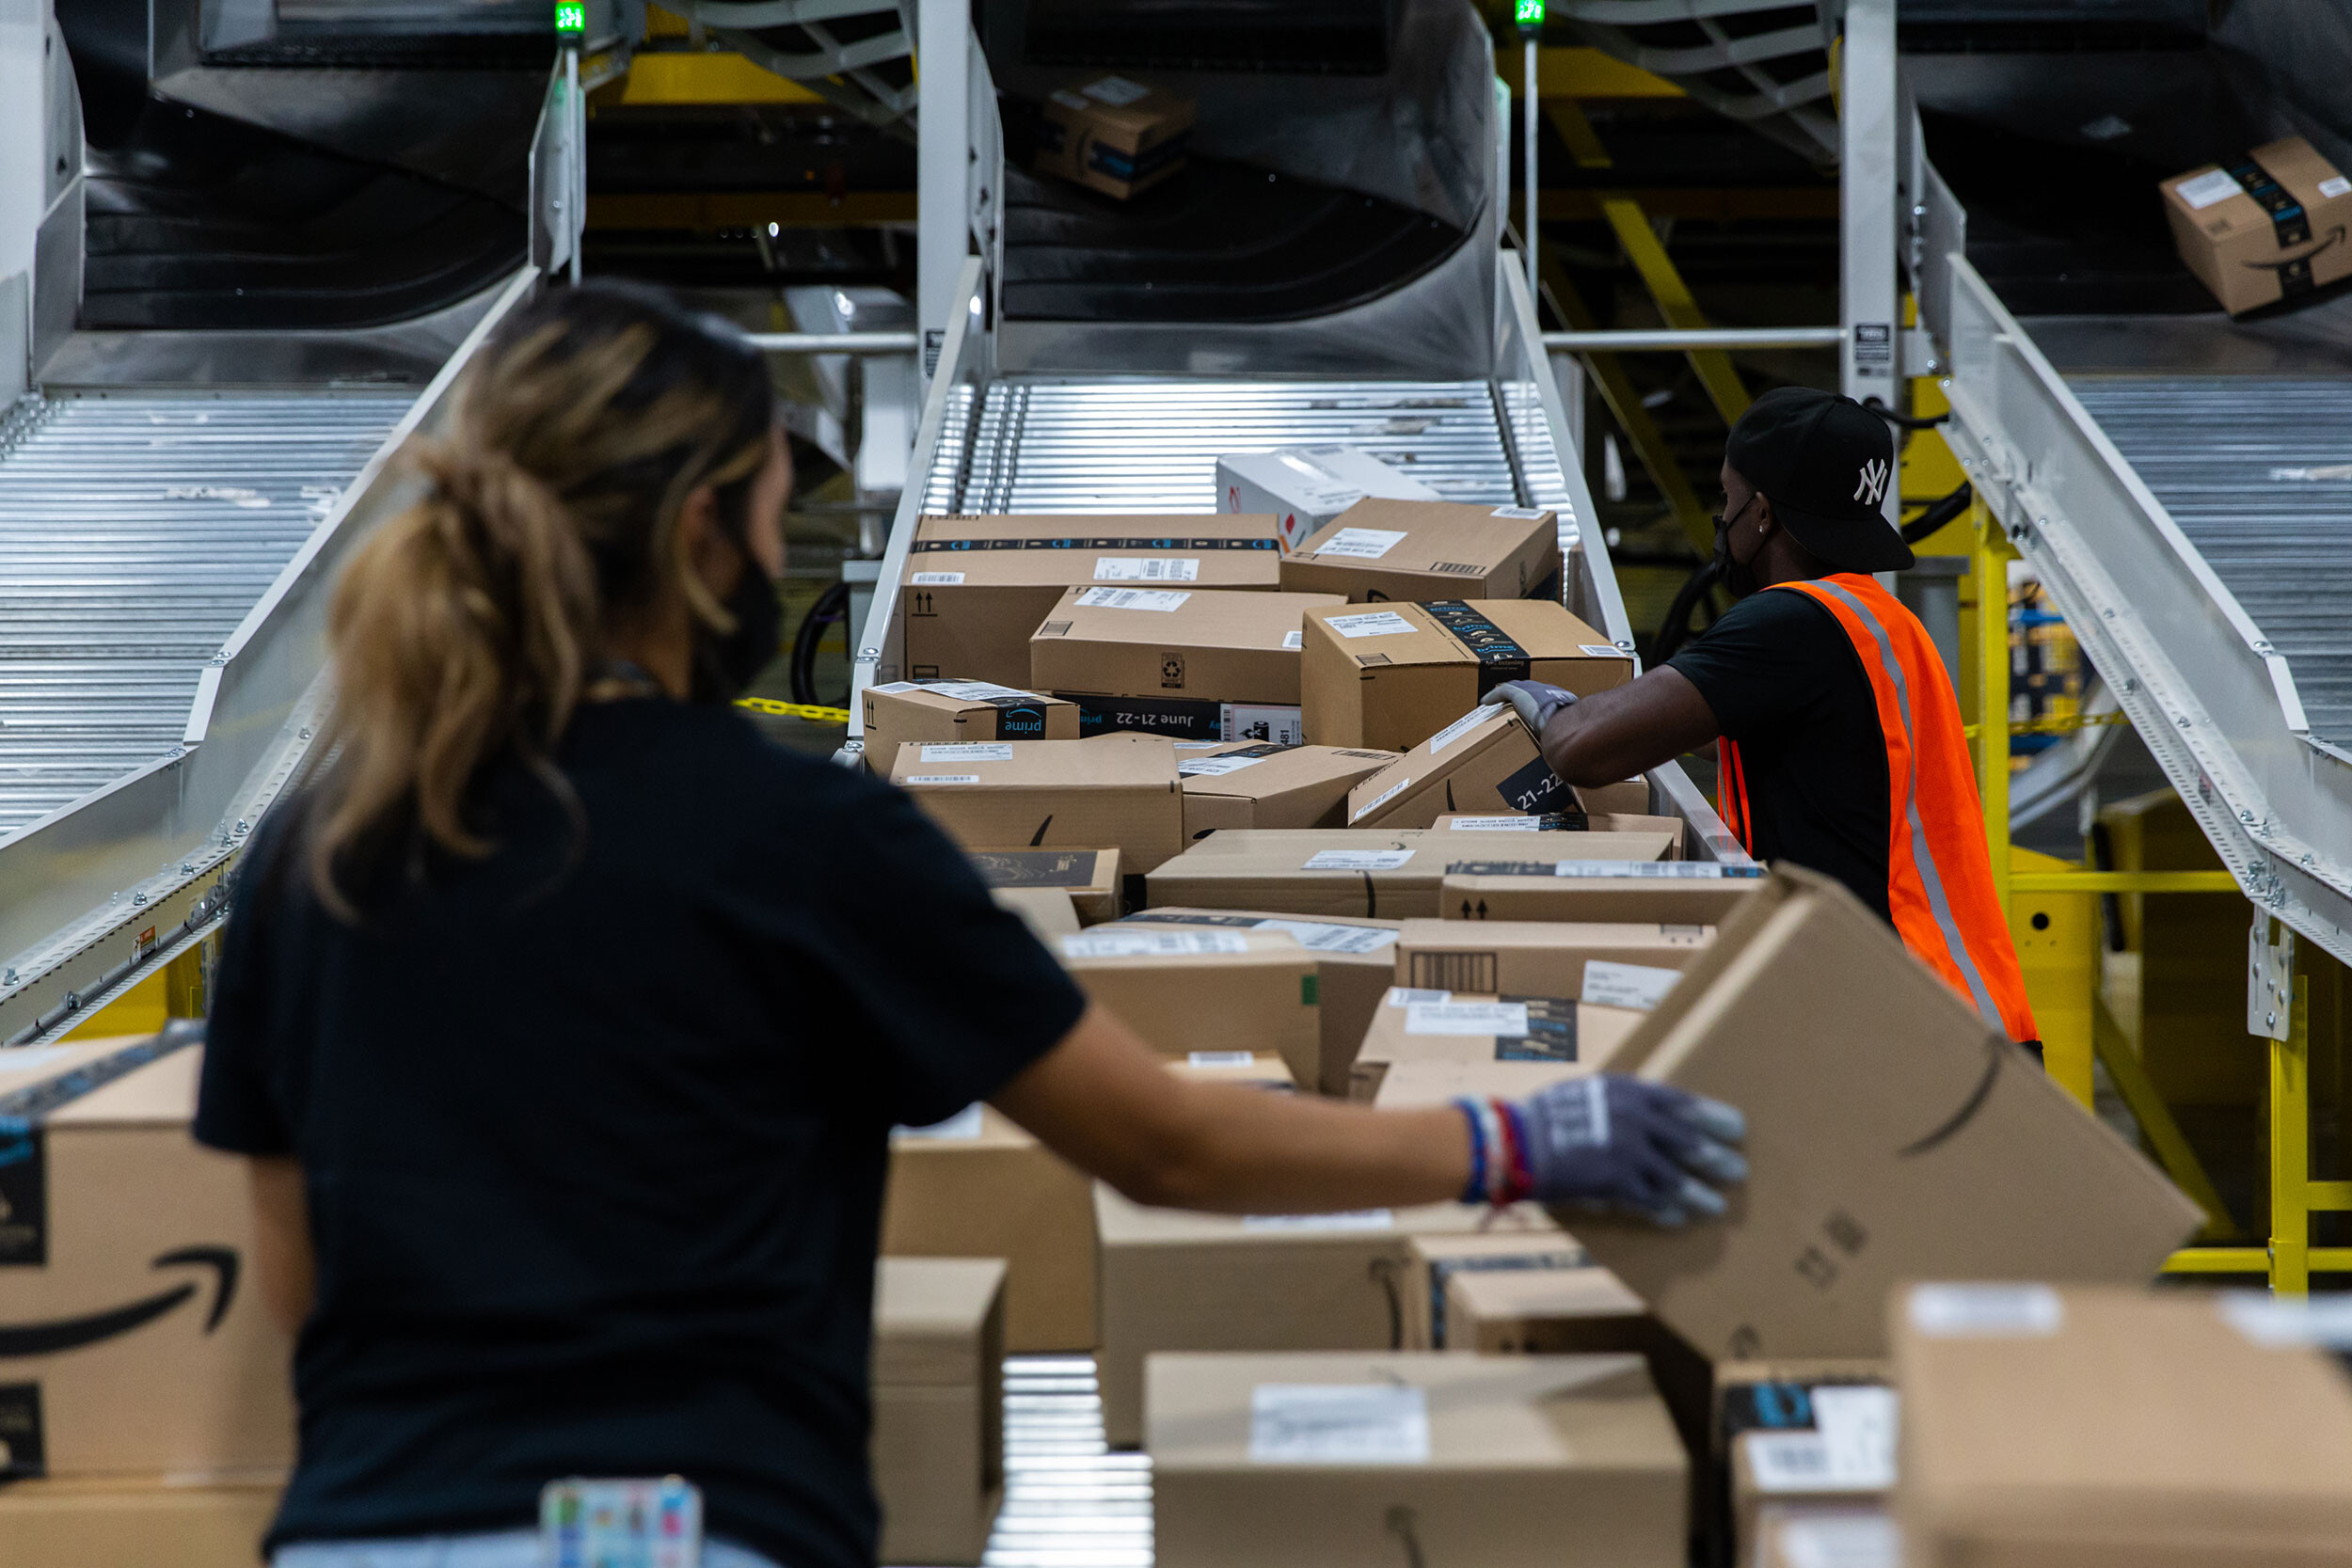 Amazon will pay up to $1,000 in damages for dangerous items sold on its site